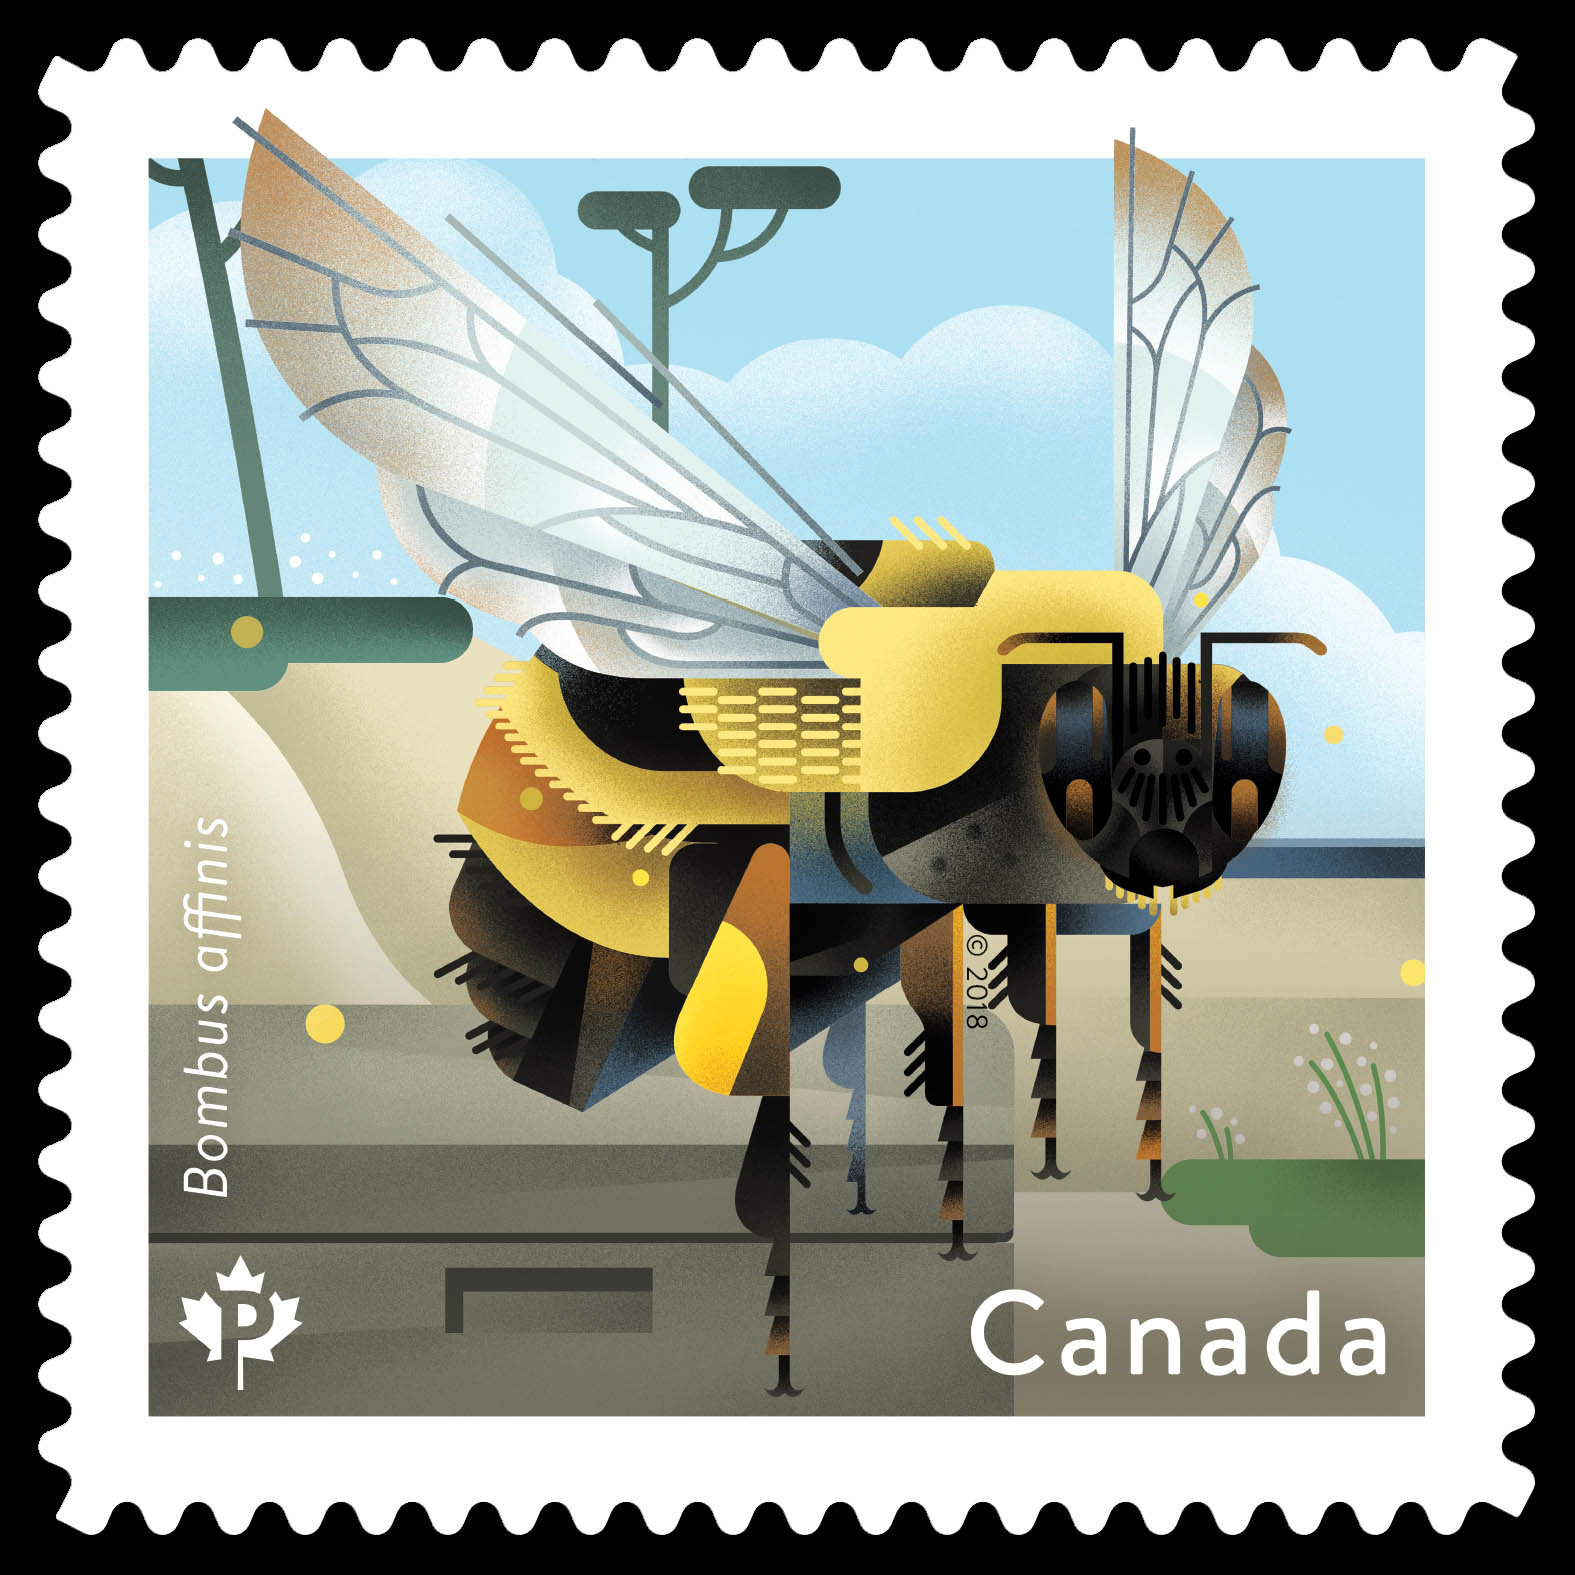 Rusty-patched Bumble Bee - Bombus Affinis Canada Postage Stamp   Bees